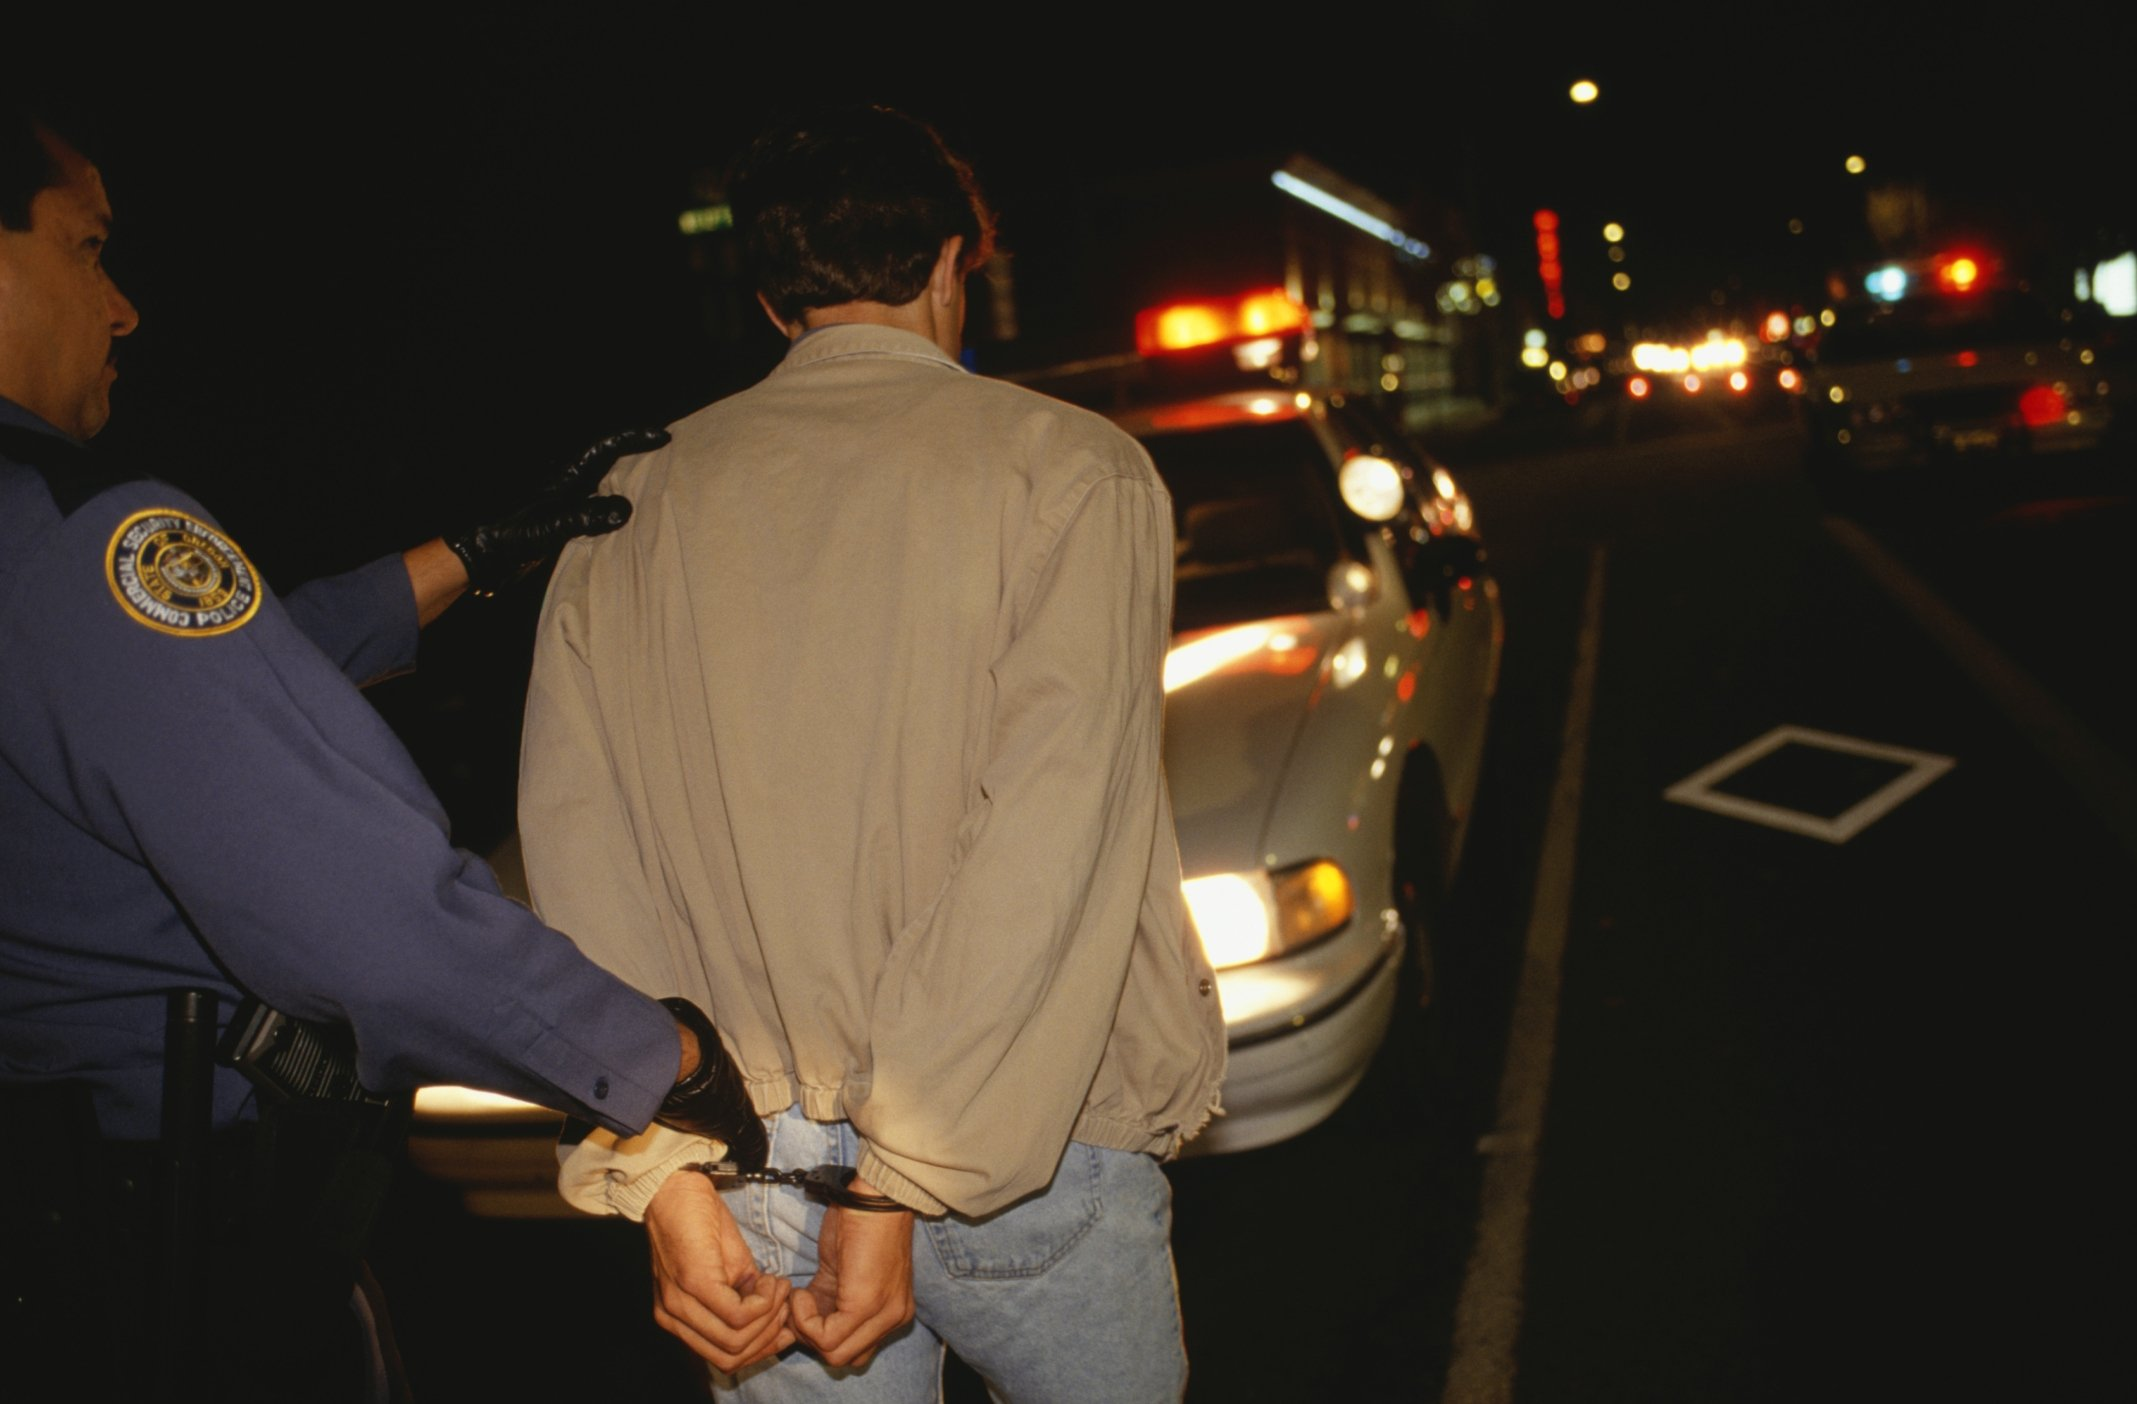 Revoked Drivers License NY Attorney, We Fight Suspended licenses